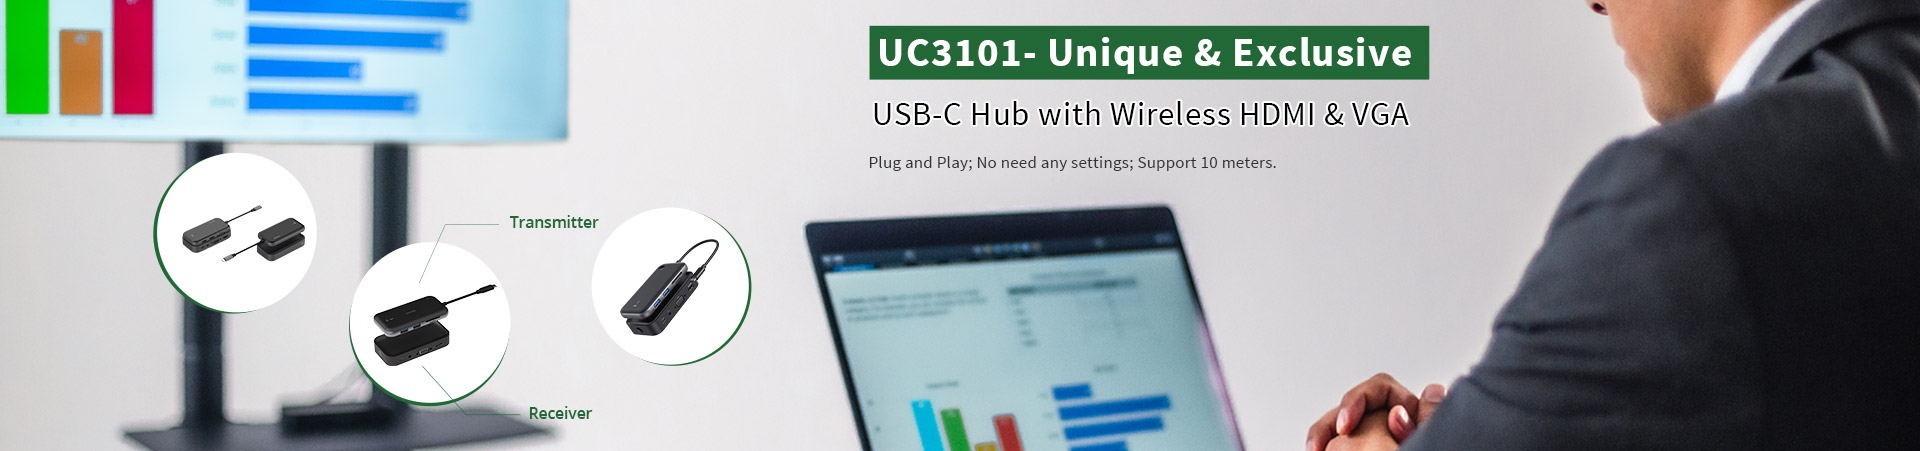 UC3101 USB-C Hub with Wireless Display